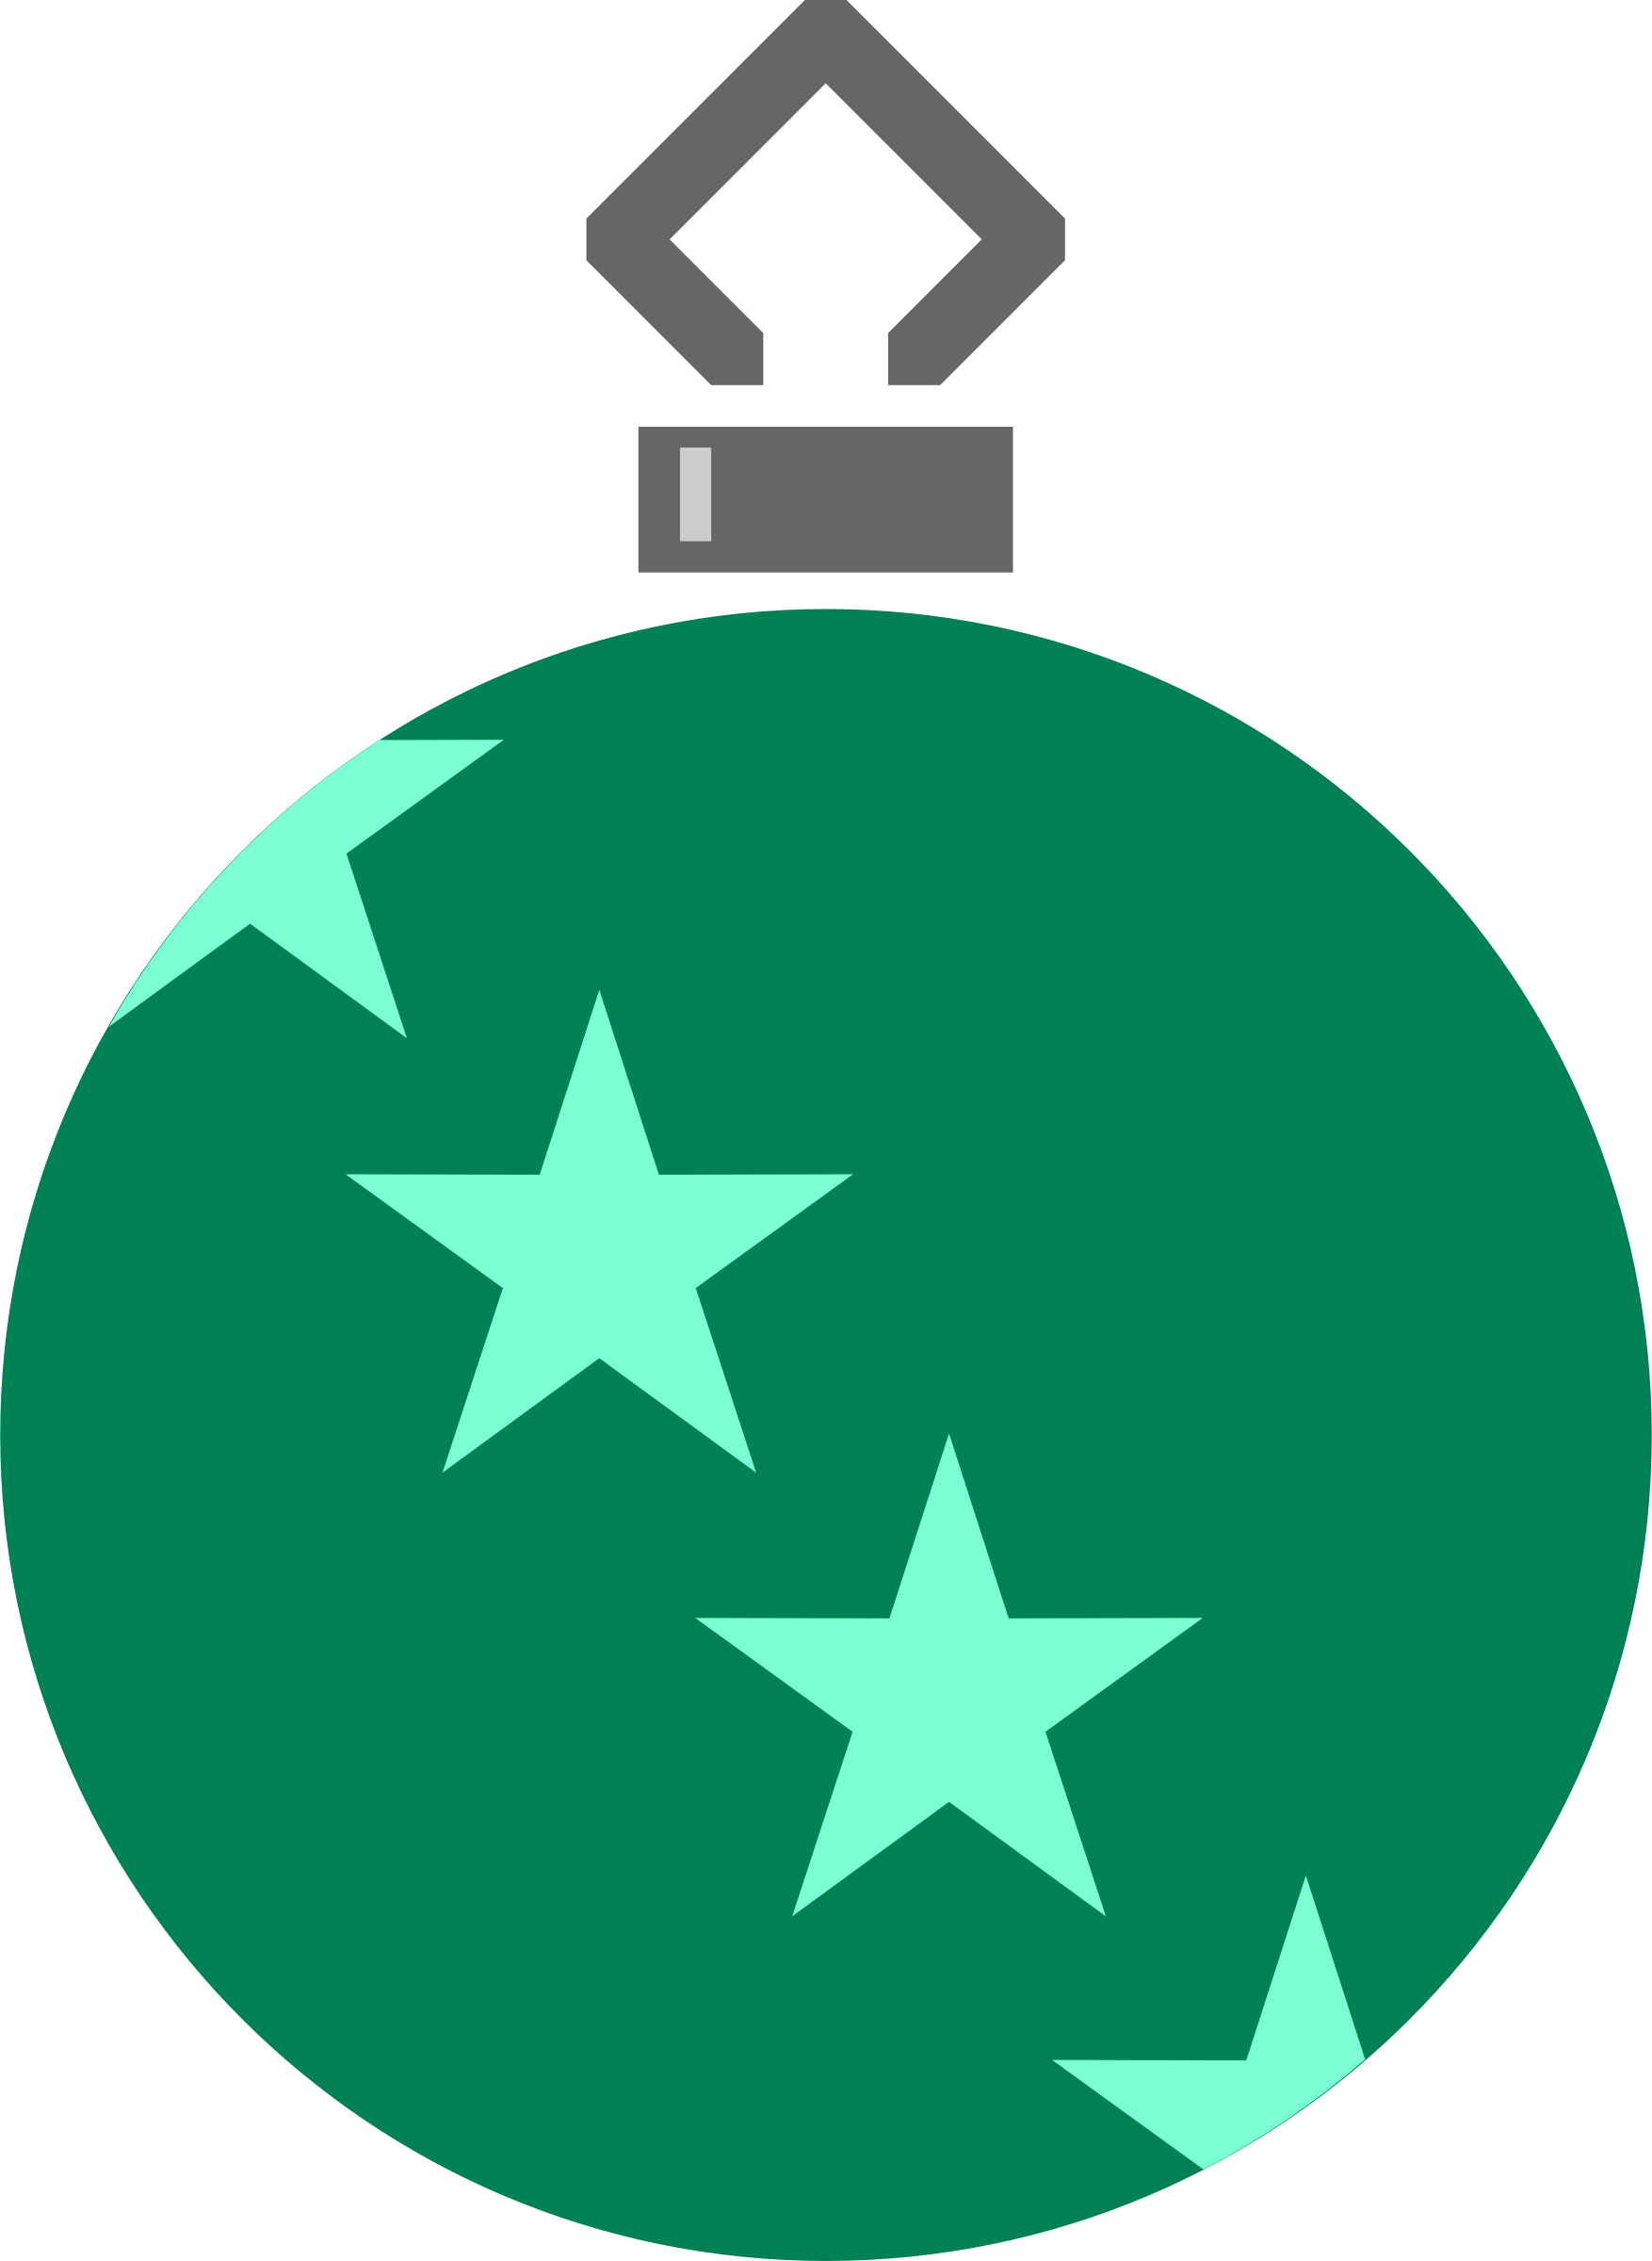 Simple tree bauble 2 (colour) by Firkin